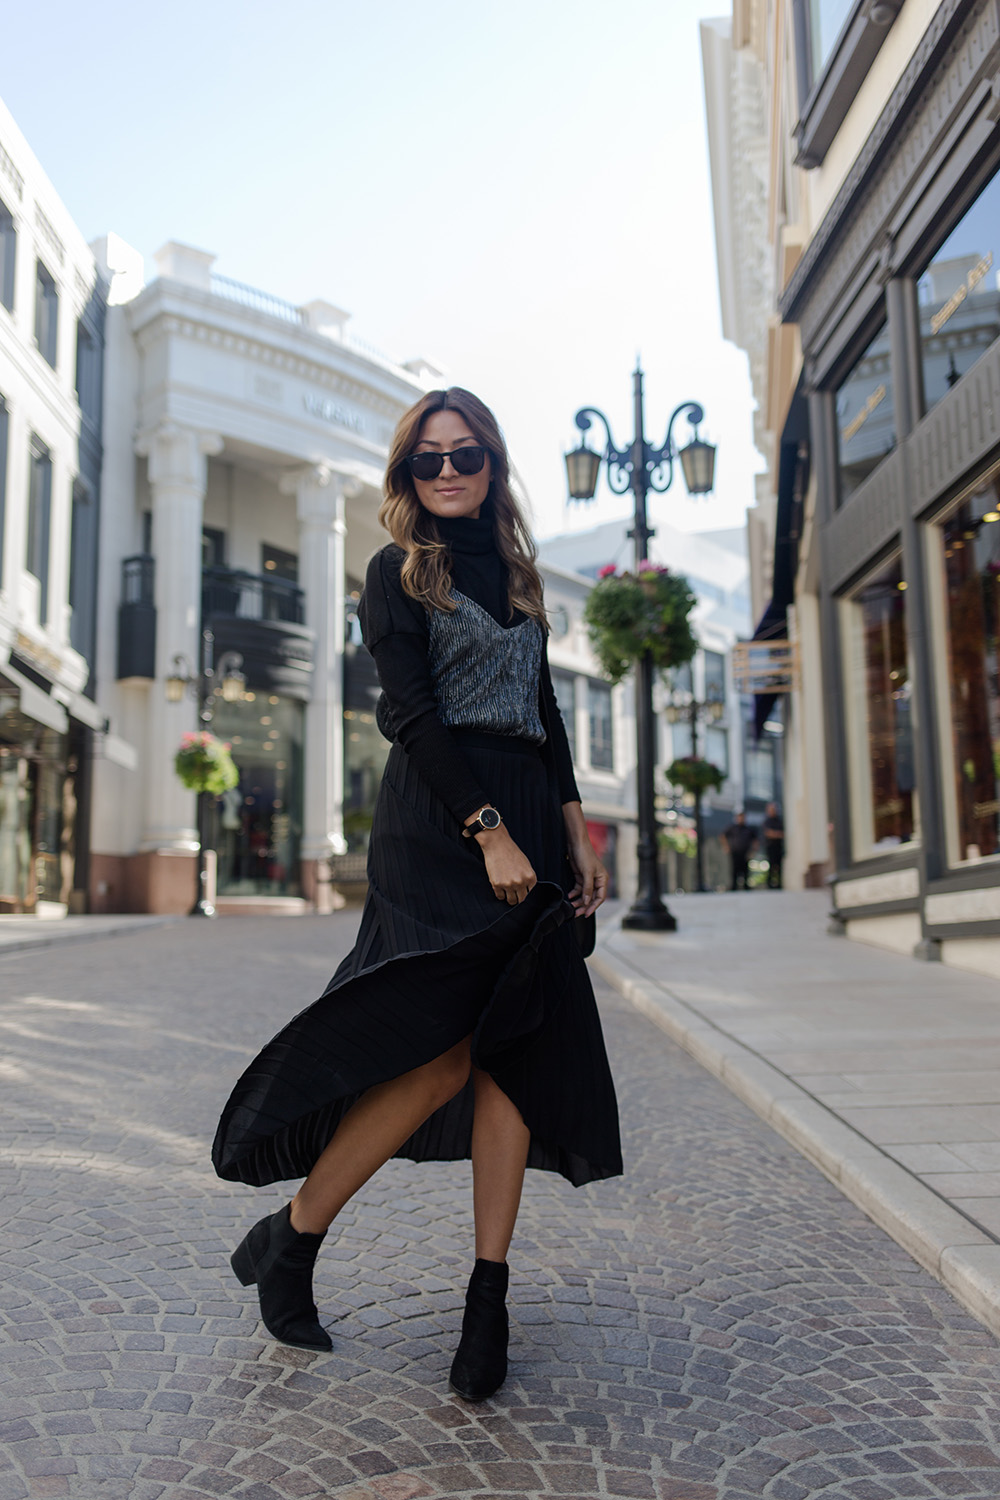 sans souci, tank, skirt chic, melrodstyle, streestyle, ootd, fashion, style, la blogger, latina blogger, hispanic blogger, mexican blogger, beverly hills,